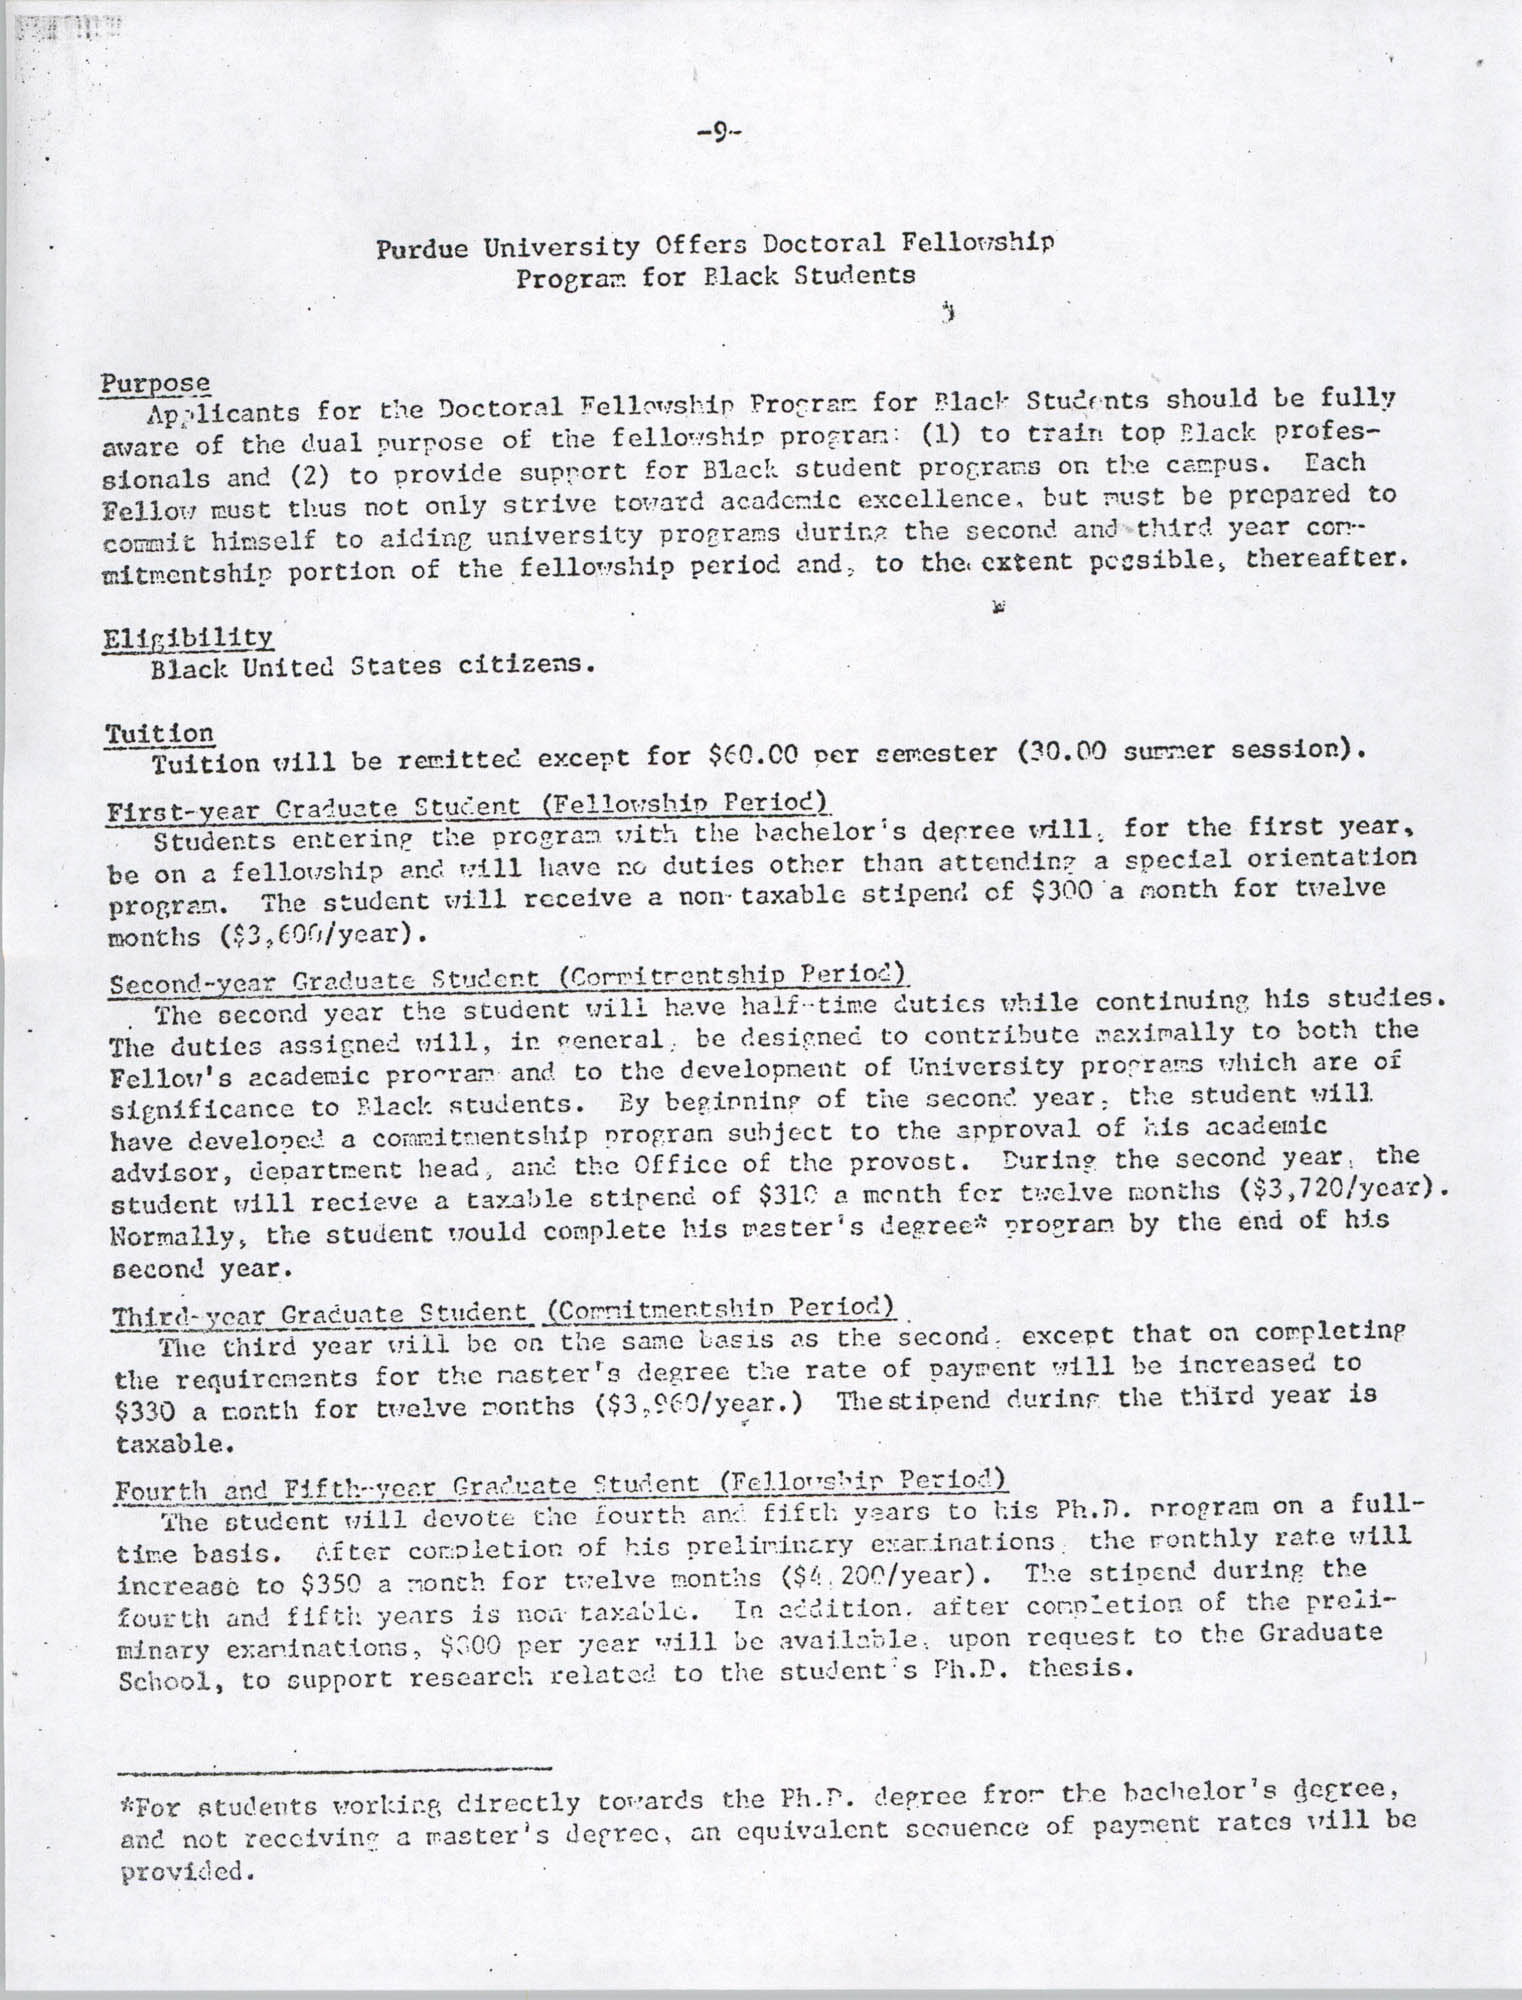 Greensboro Citizens' Association Minutes, April 24, 1984